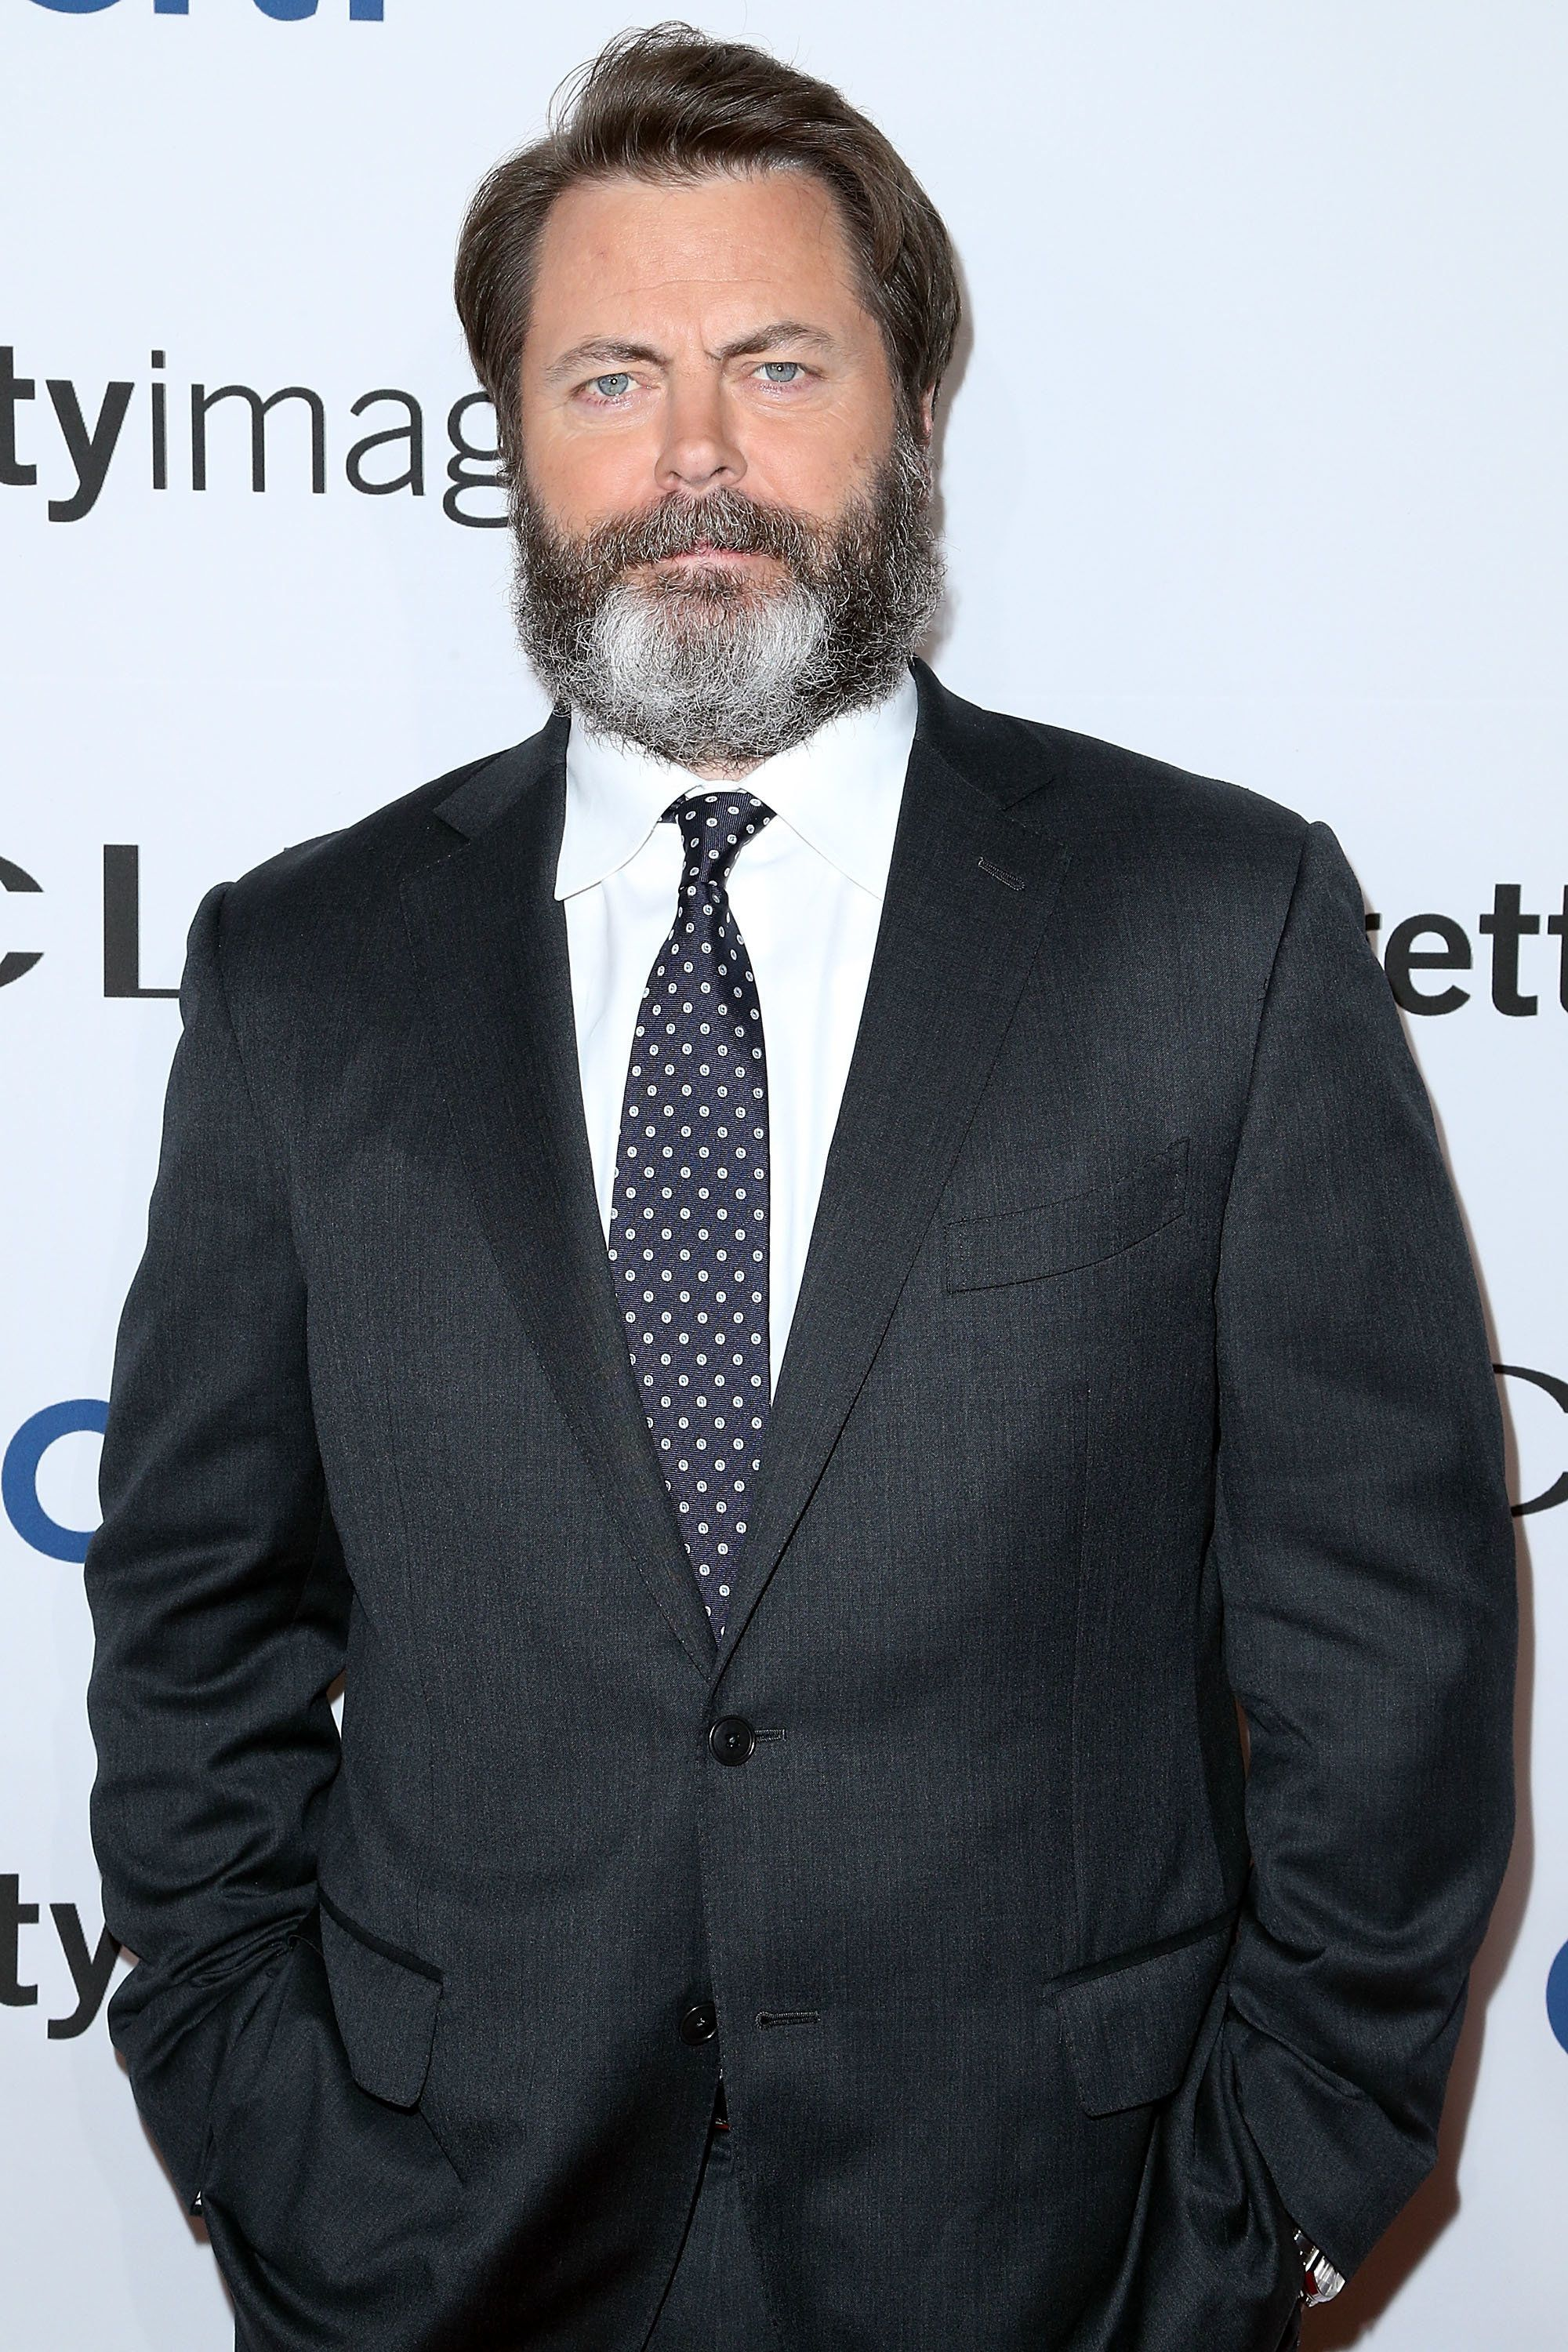 NEW YORK, NY - SEPTEMBER 28:  Actor  Nick Offerman attending the 2016 CLIO Awards  at American Museum of Natural History on September 28, 2016 in New York City.  (Photo by Jimi Celeste/Patrick McMullan via Getty Images)